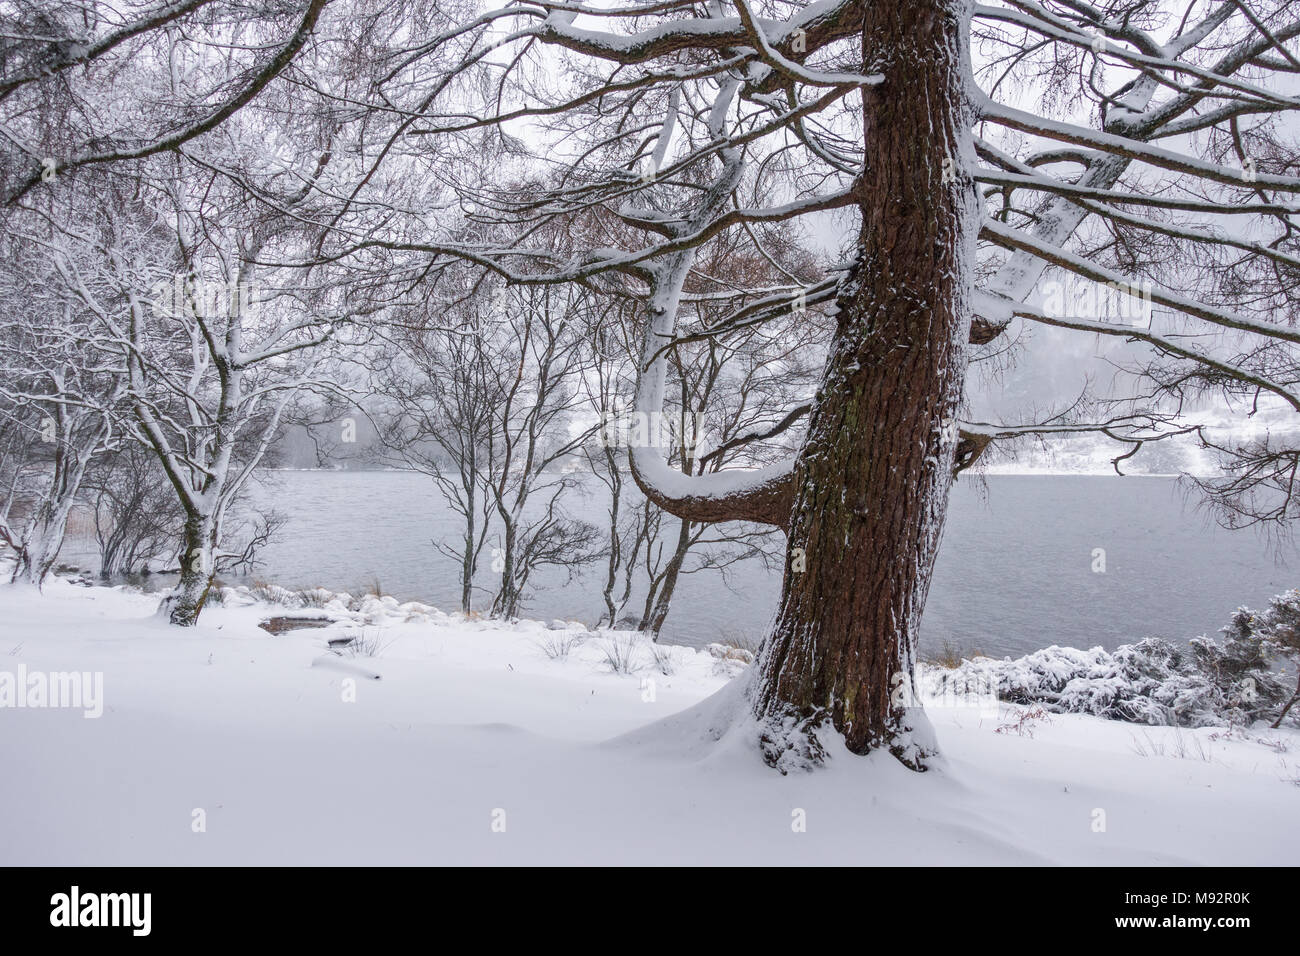 Snow in the forest - Ireland - Stock Image